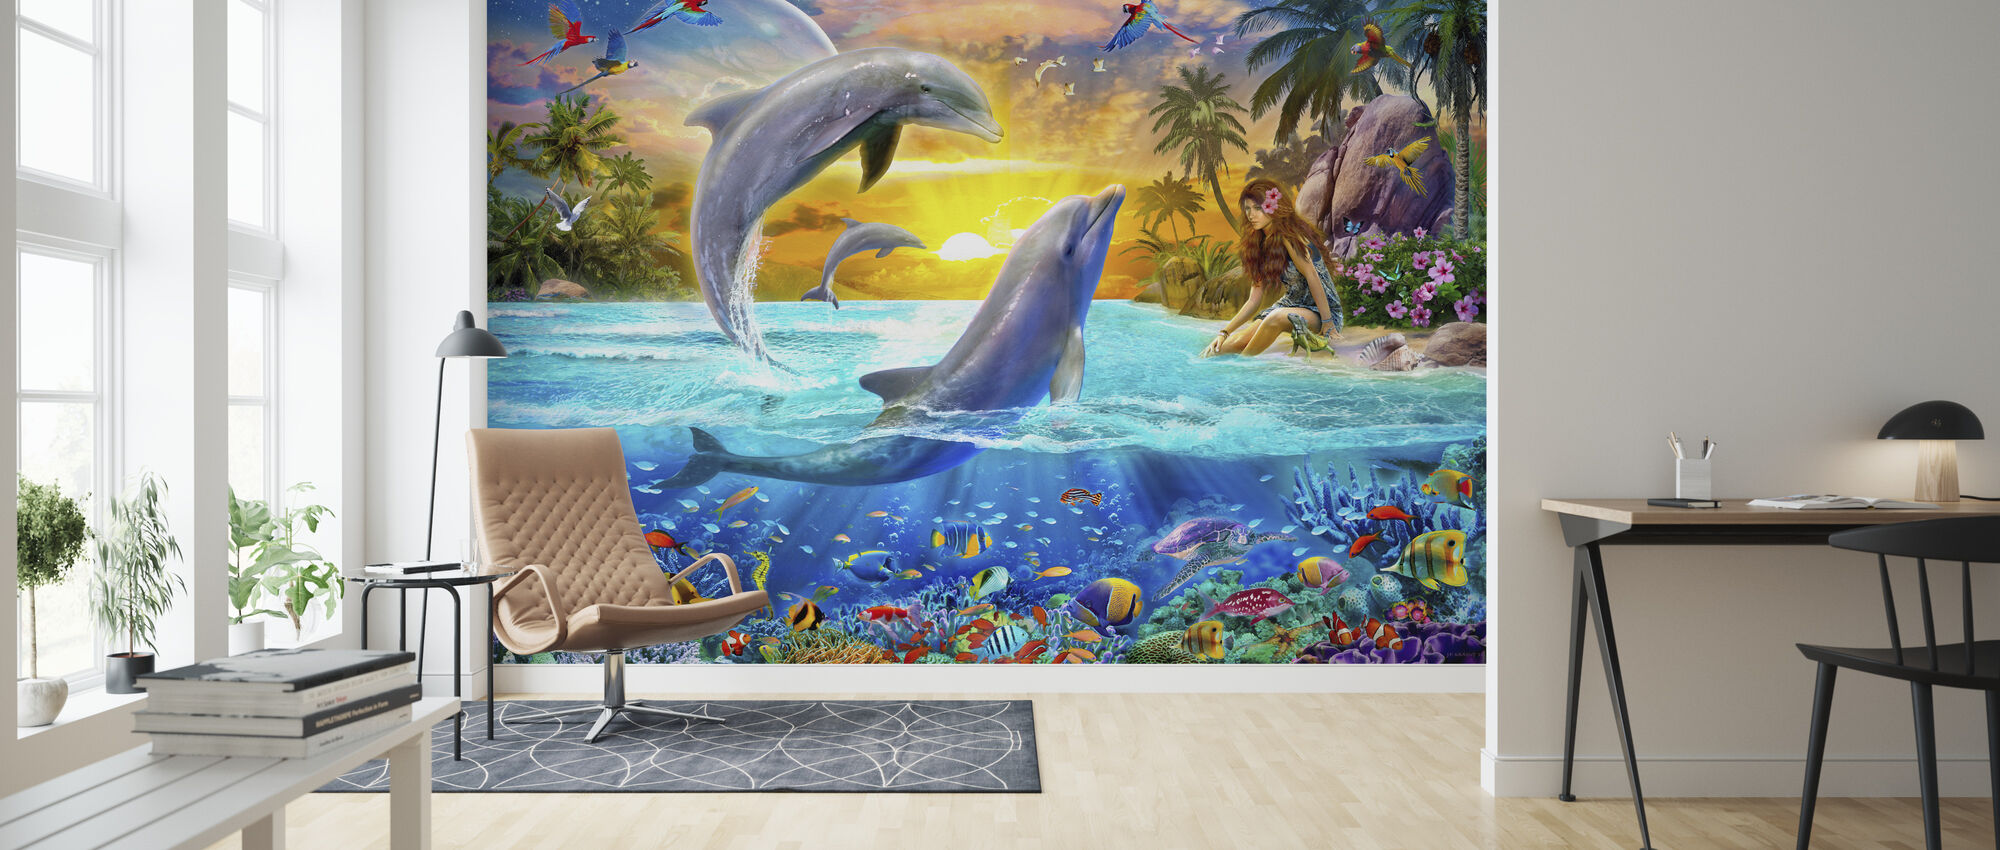 Girl and Dolphins - Wallpaper - Living Room